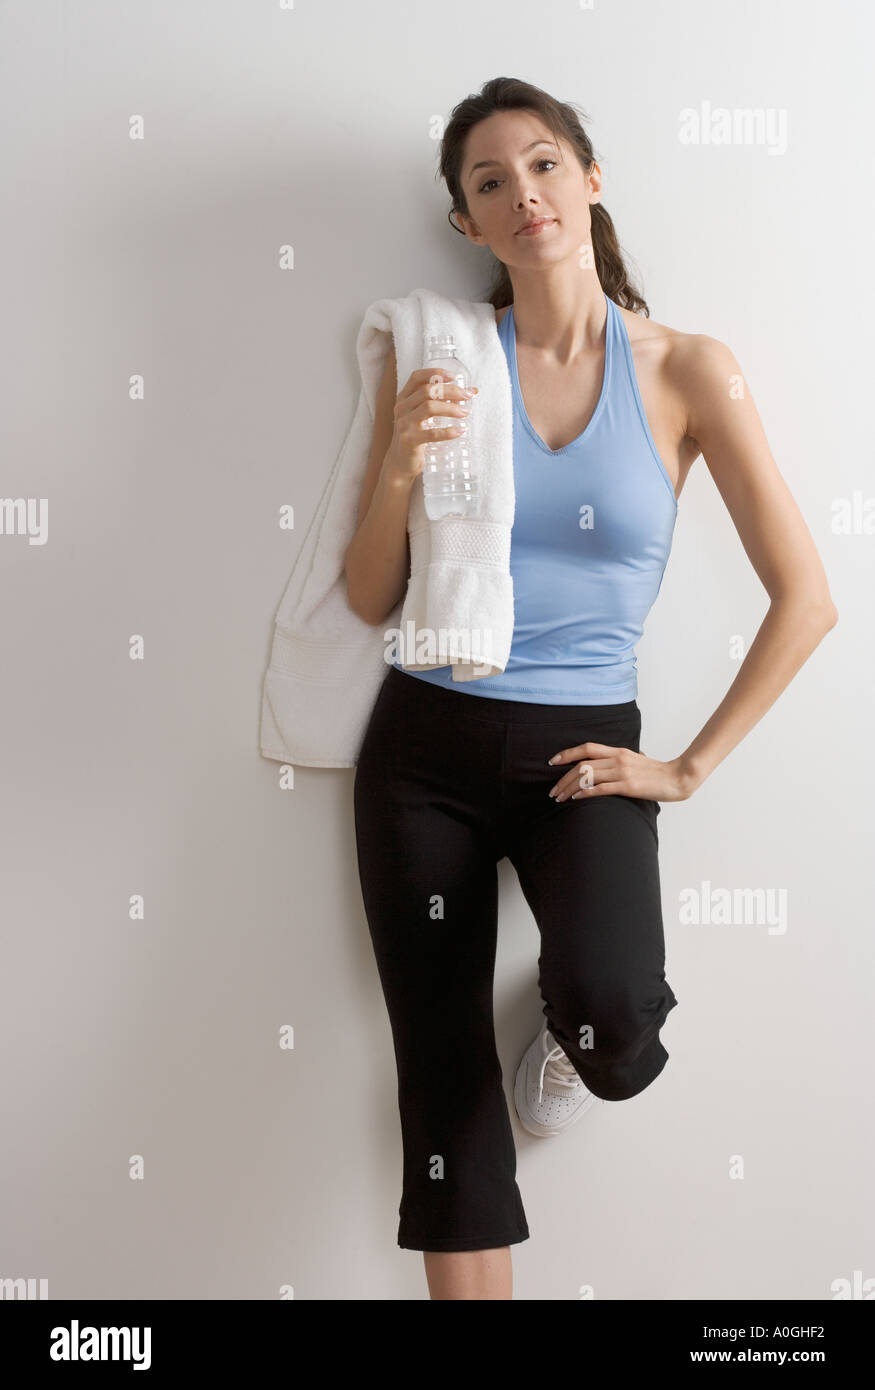 Woman in workout clothes with towel Stock Photo